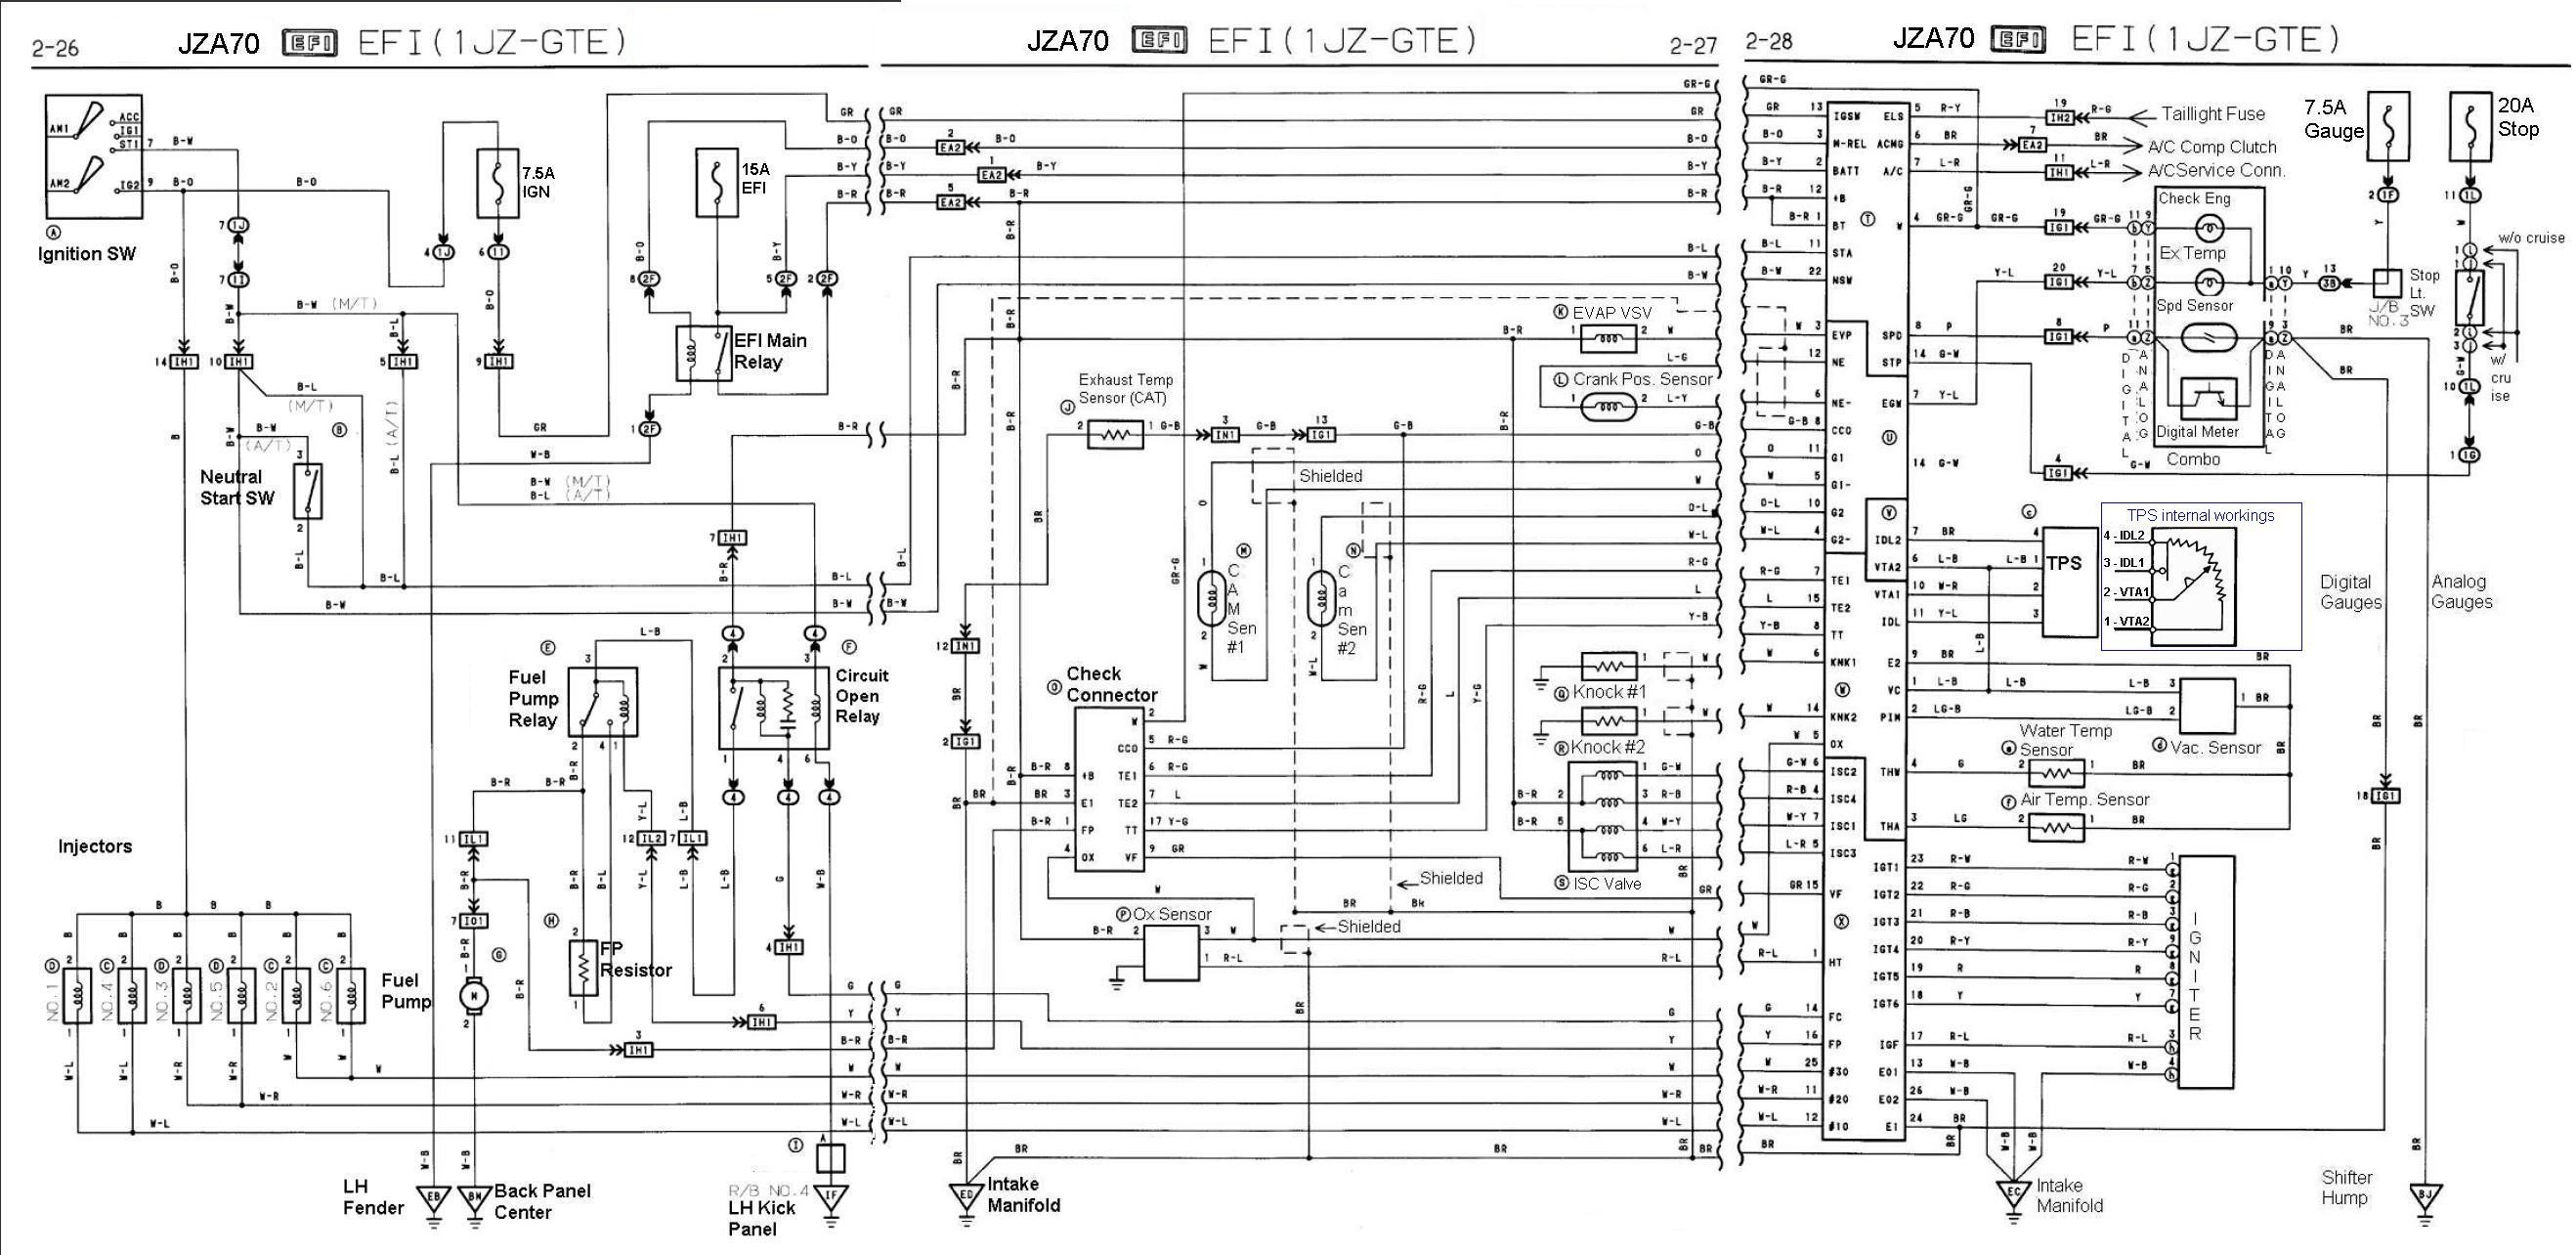 Incredible Rb25 Wiring Plug Diagram Wiring Diagram Sq Wiring Cloud Battdienstapotheekhoekschewaardnl